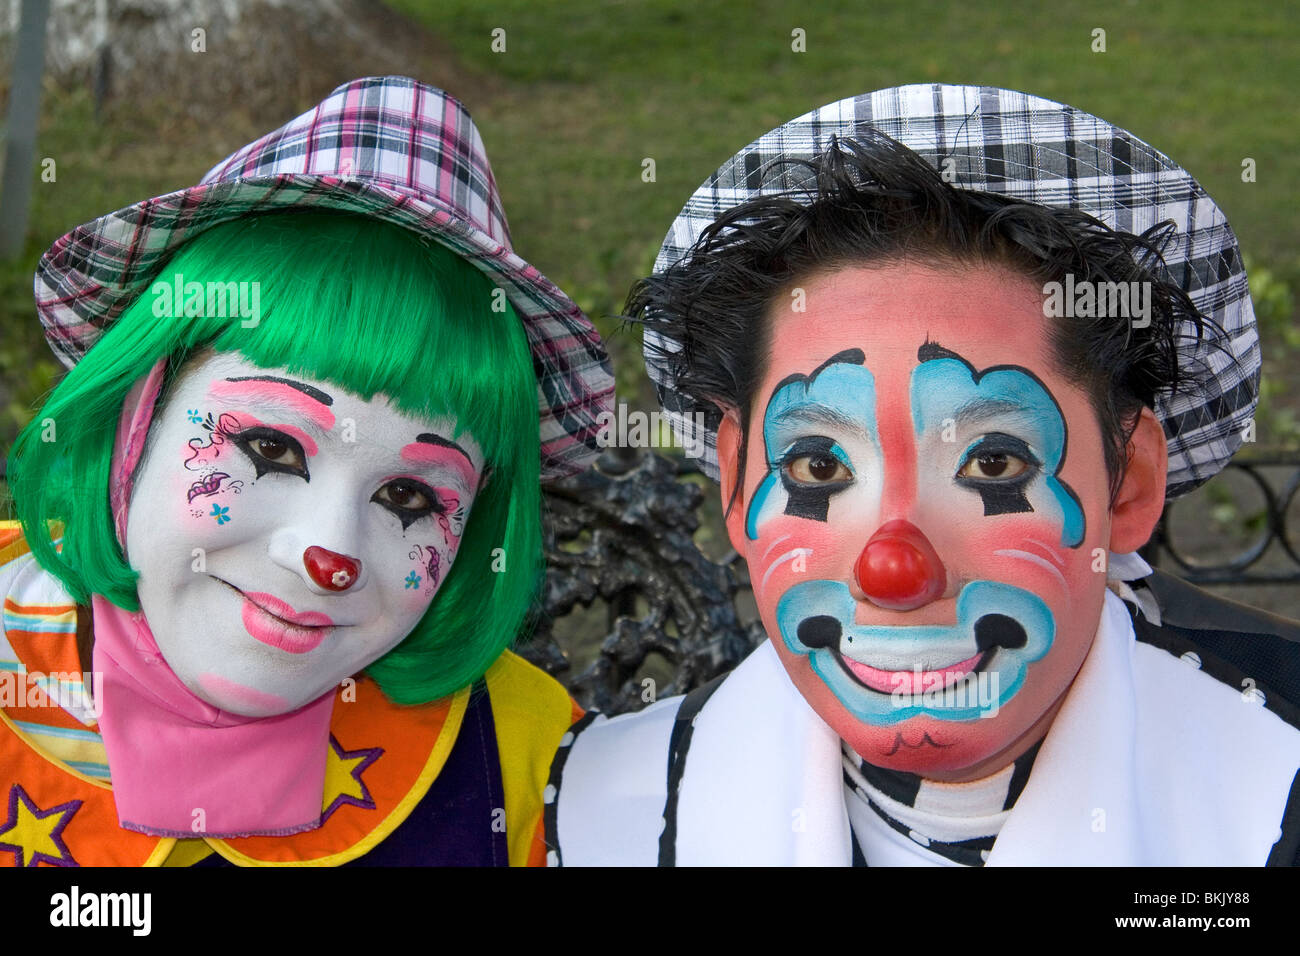 Male and female clown performers in the city of Puebla, Puebla, Mexico. - Stock Image